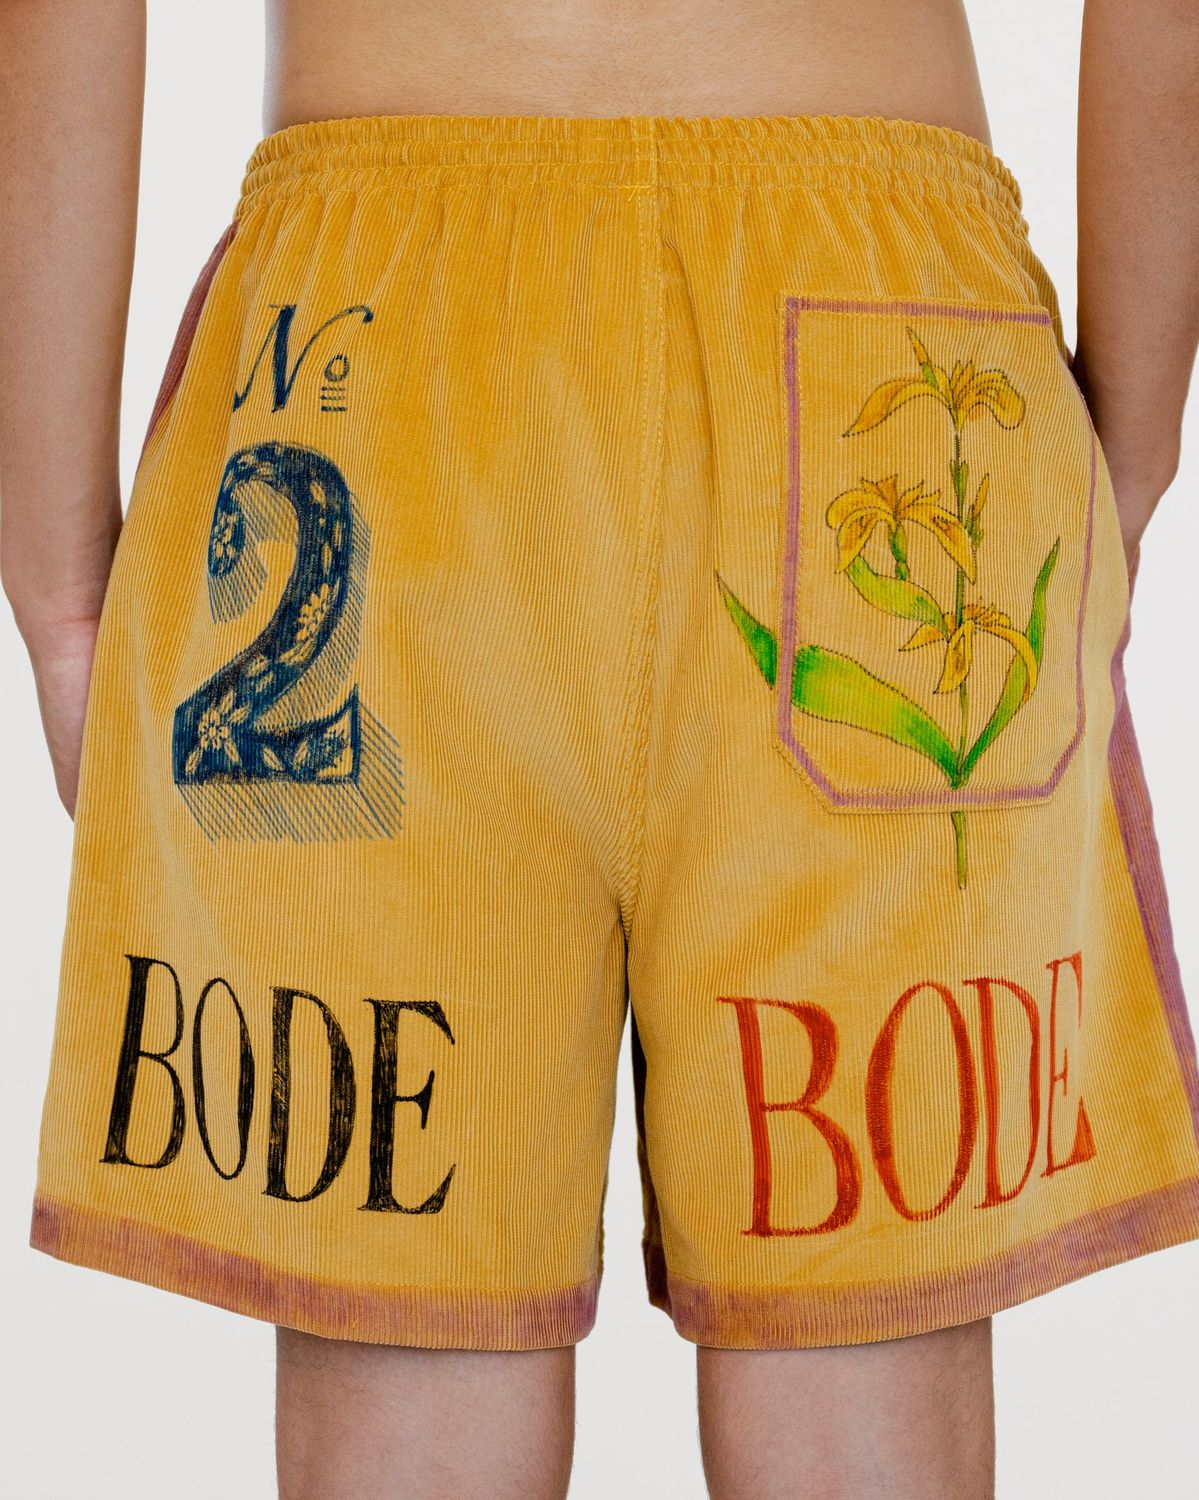 BODE - Senior Cord Rugby Shorts - Image 2